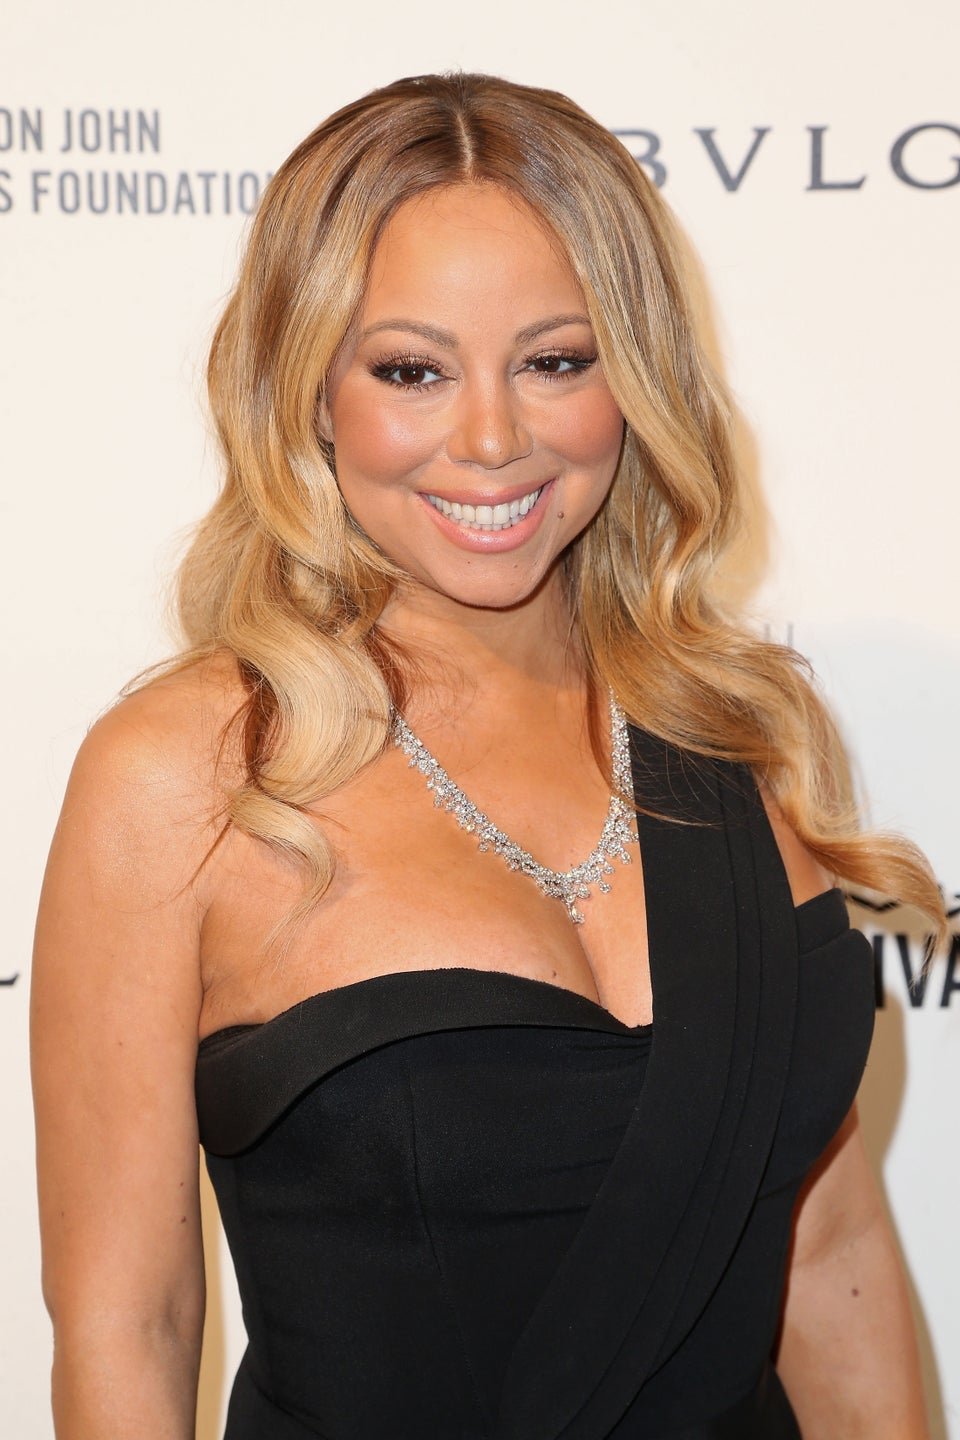 Is There a Mariah Carey Reality Show in the Works?